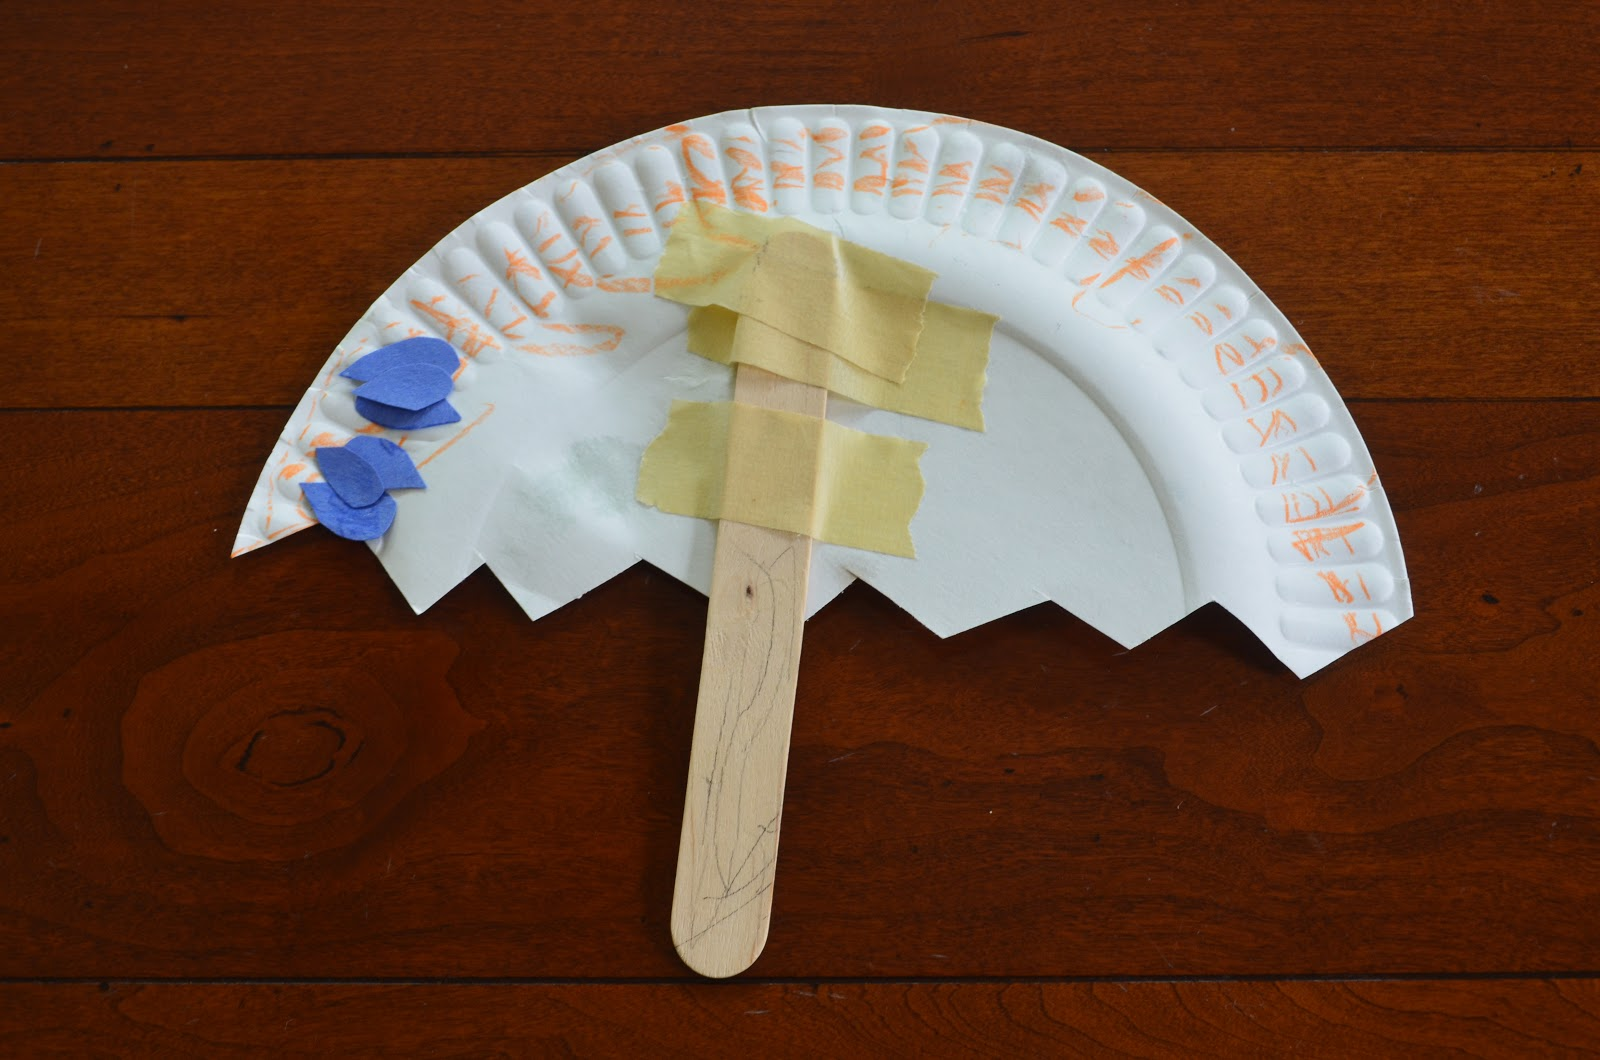 Paper Plate Umbrella For A Rainy Day